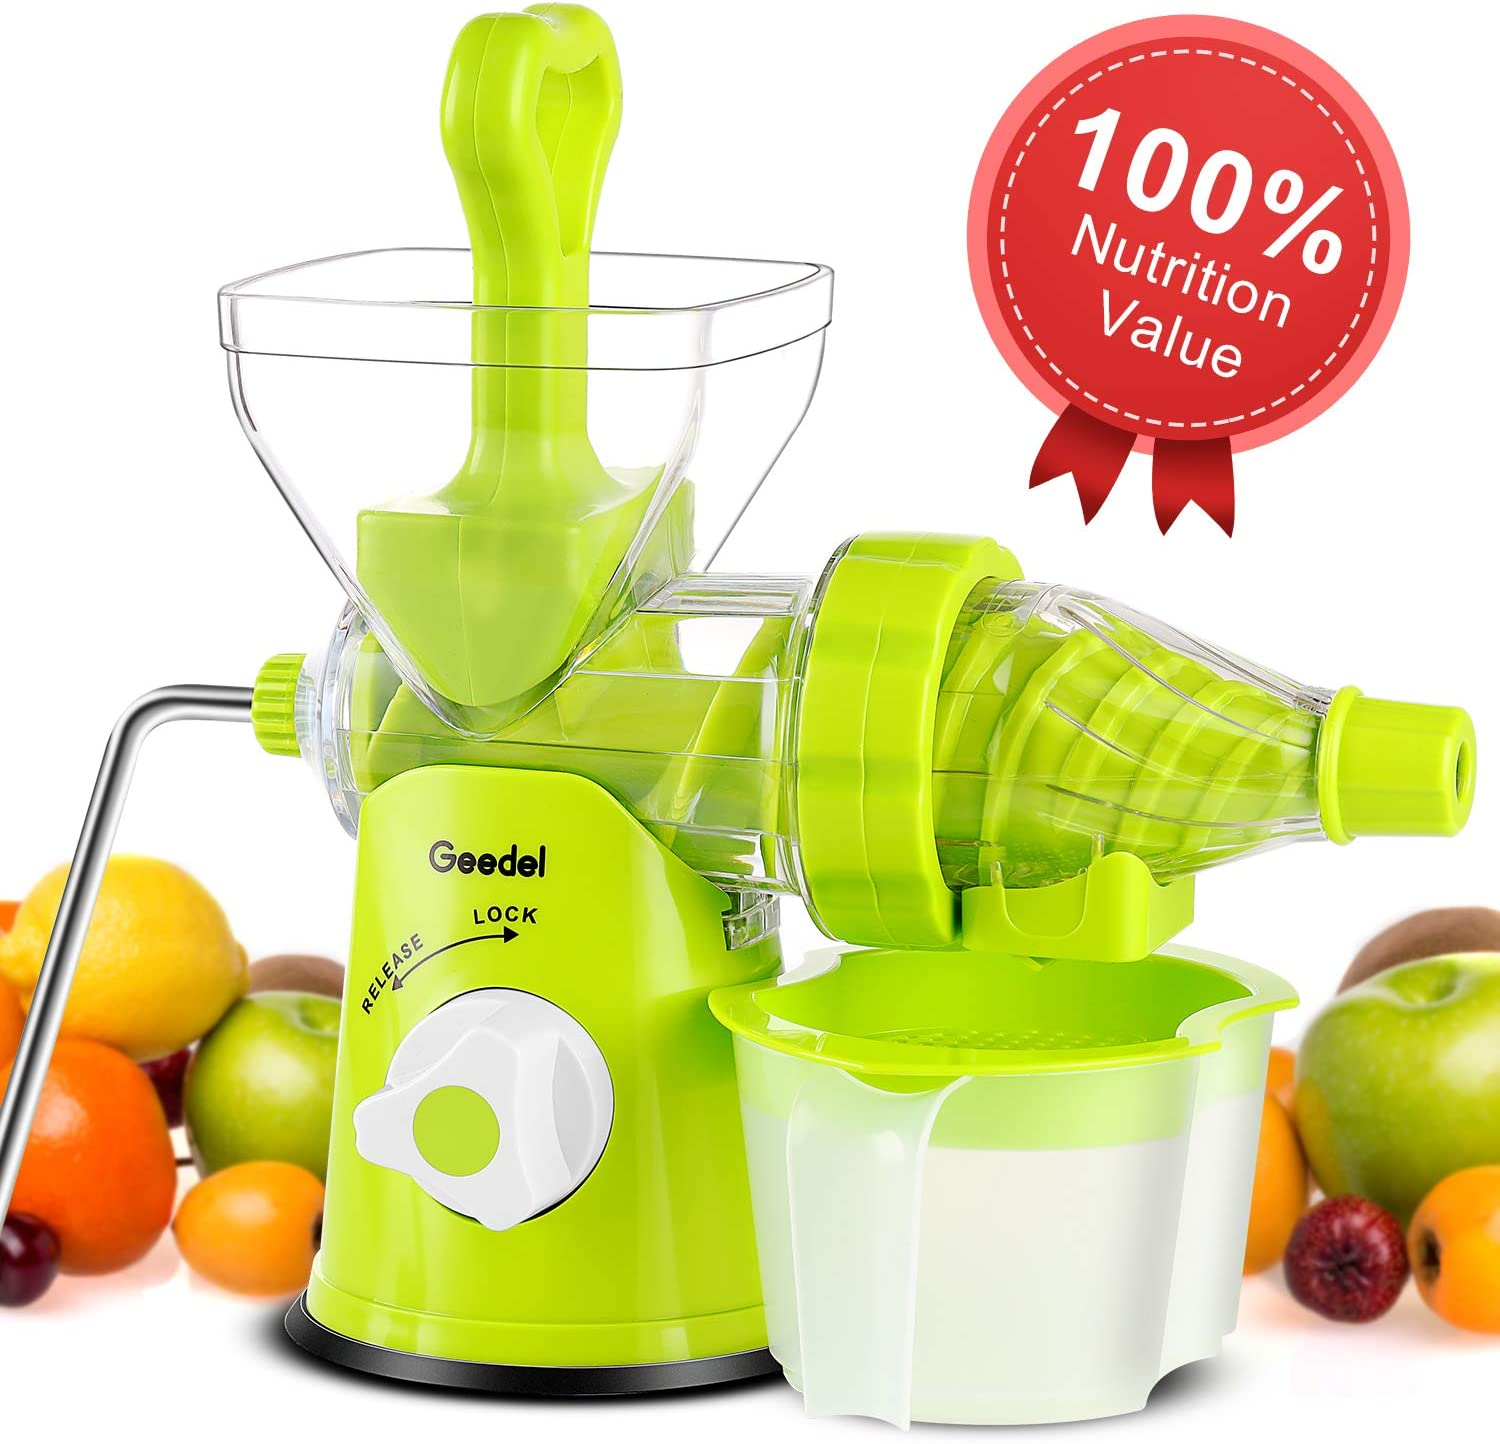 Manual Masticating Juicer Easy to Clean, Hand Slow Juicer Machine for Vegetables and Fruits (Green)